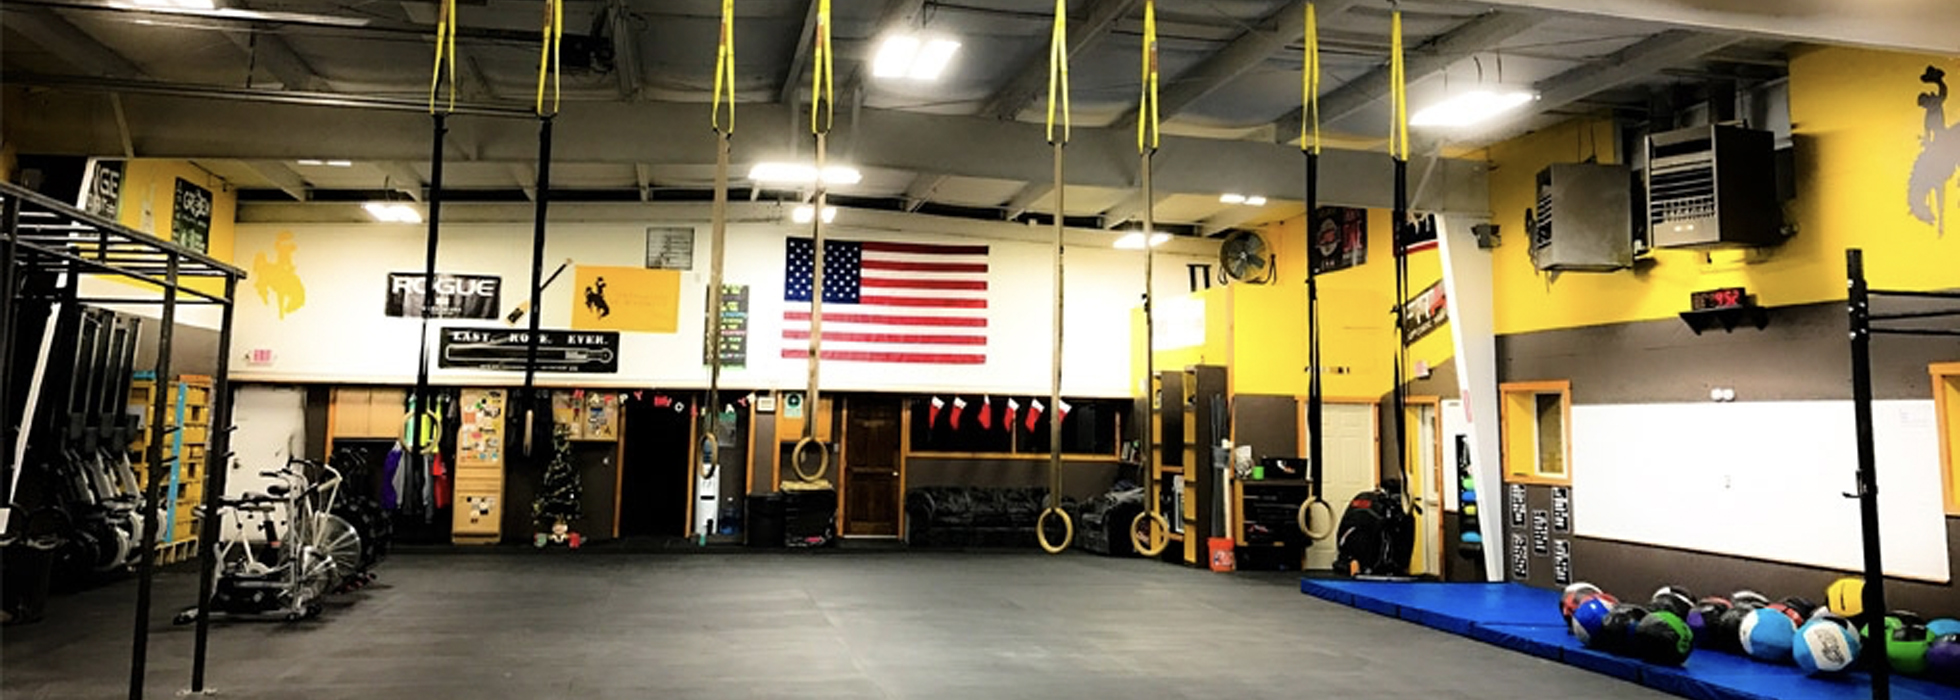 CrossFit Gym near Gillette WY